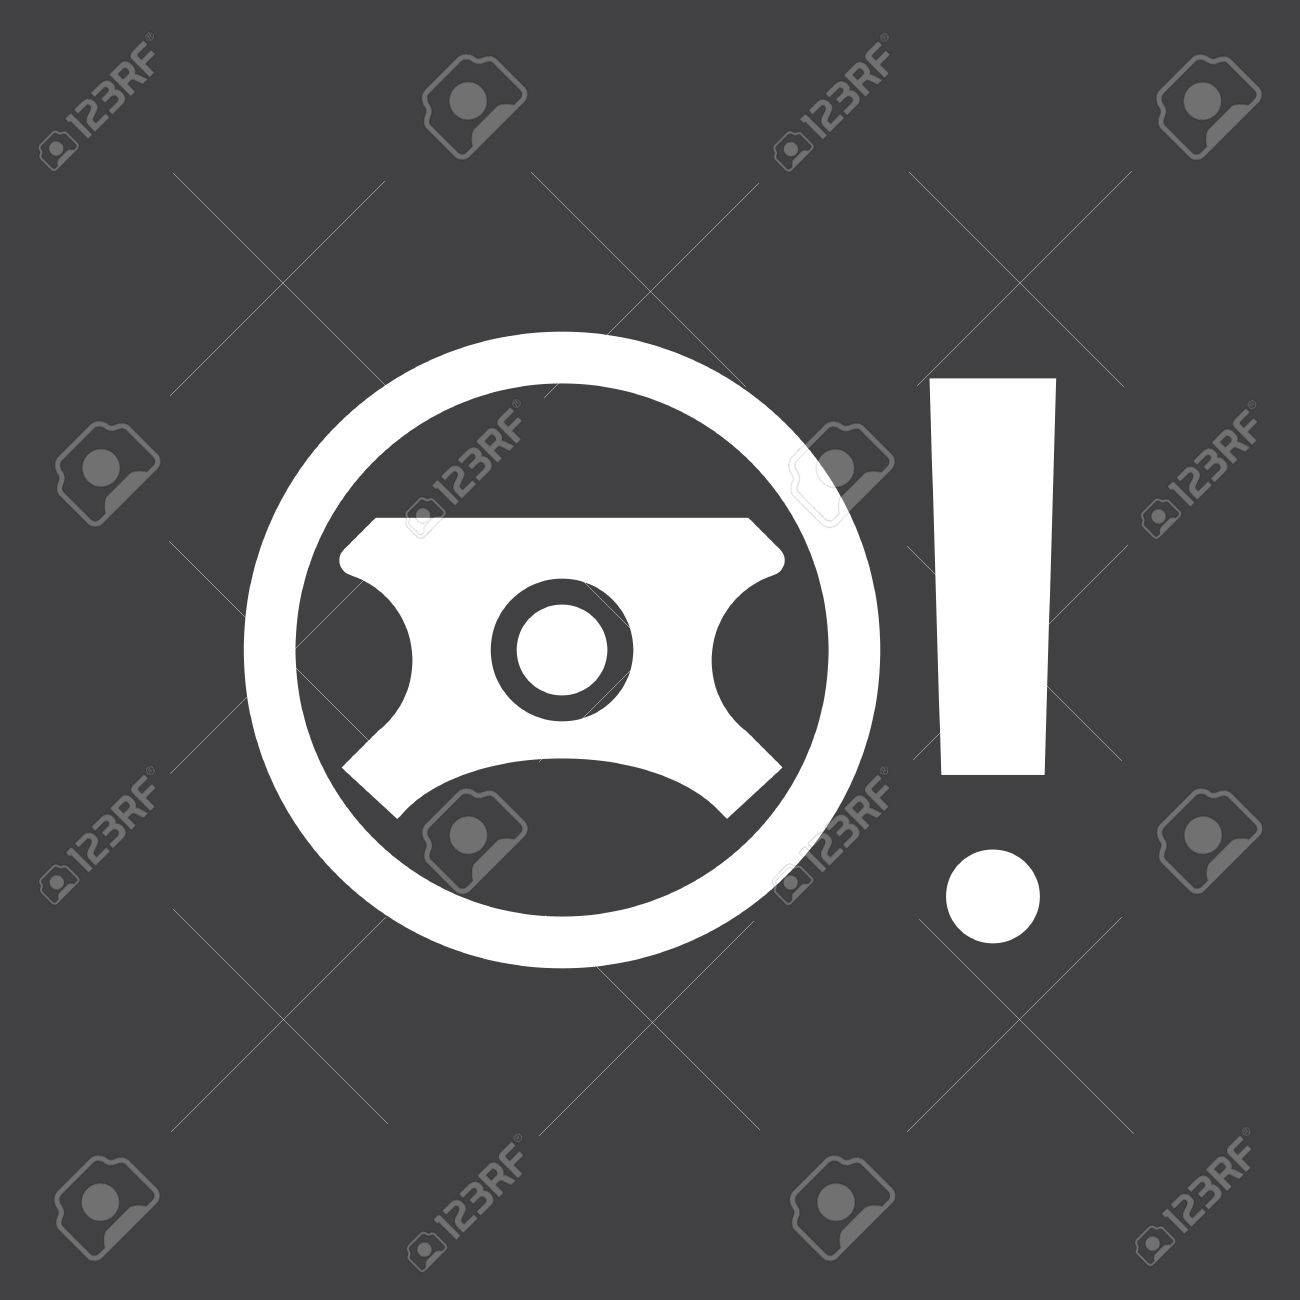 Car Dashboard Icons Stock Images RoyaltyFree Images Vectors The - Car sign on dashboard